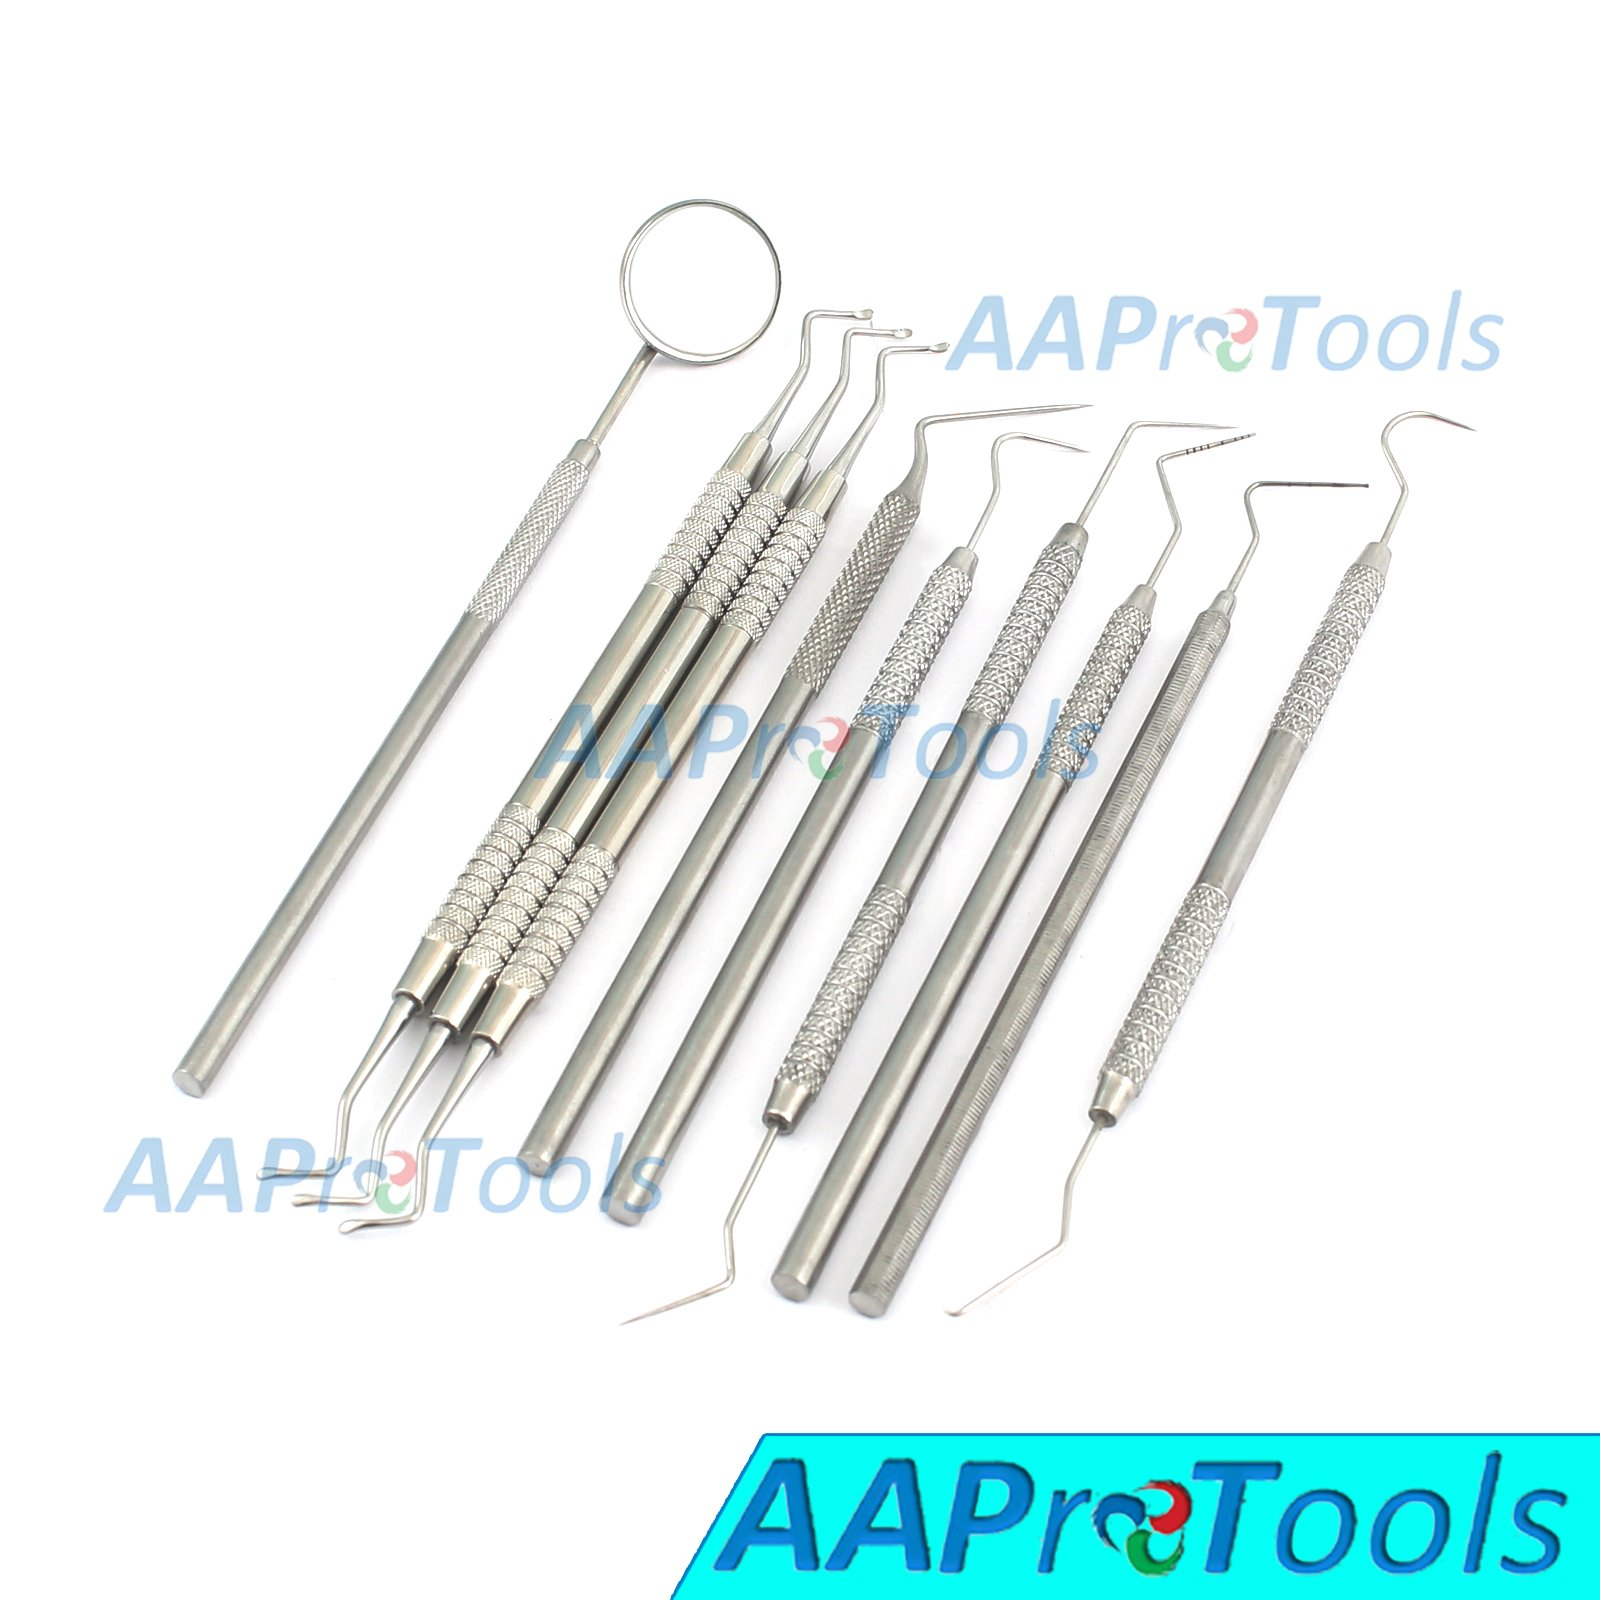 AAPROTOOLS 10 PCS PREMIUM DENTAL EXAMINATION SET EXPLORERS PROBES EXCAVATORS SPREADERS MIRROR A+ QUALITY